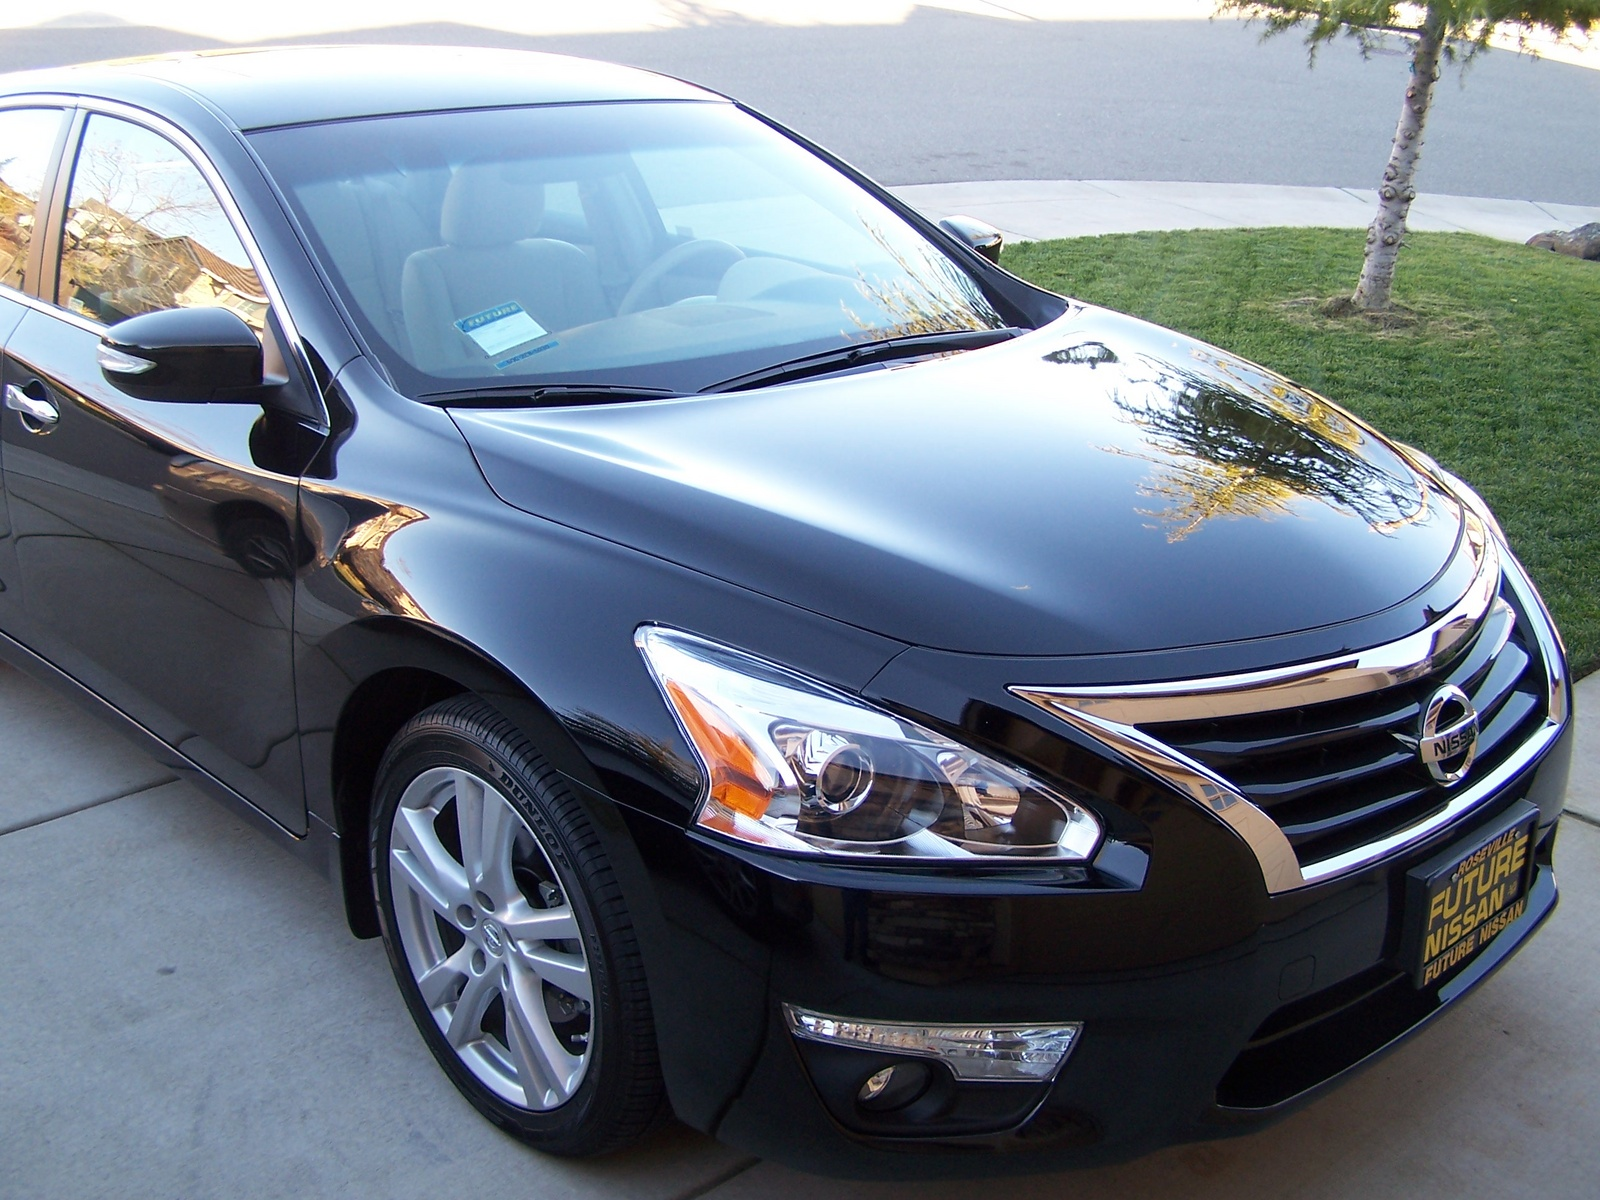 Used 2005 Nissan Altima Sedan Pricing Features Edmunds